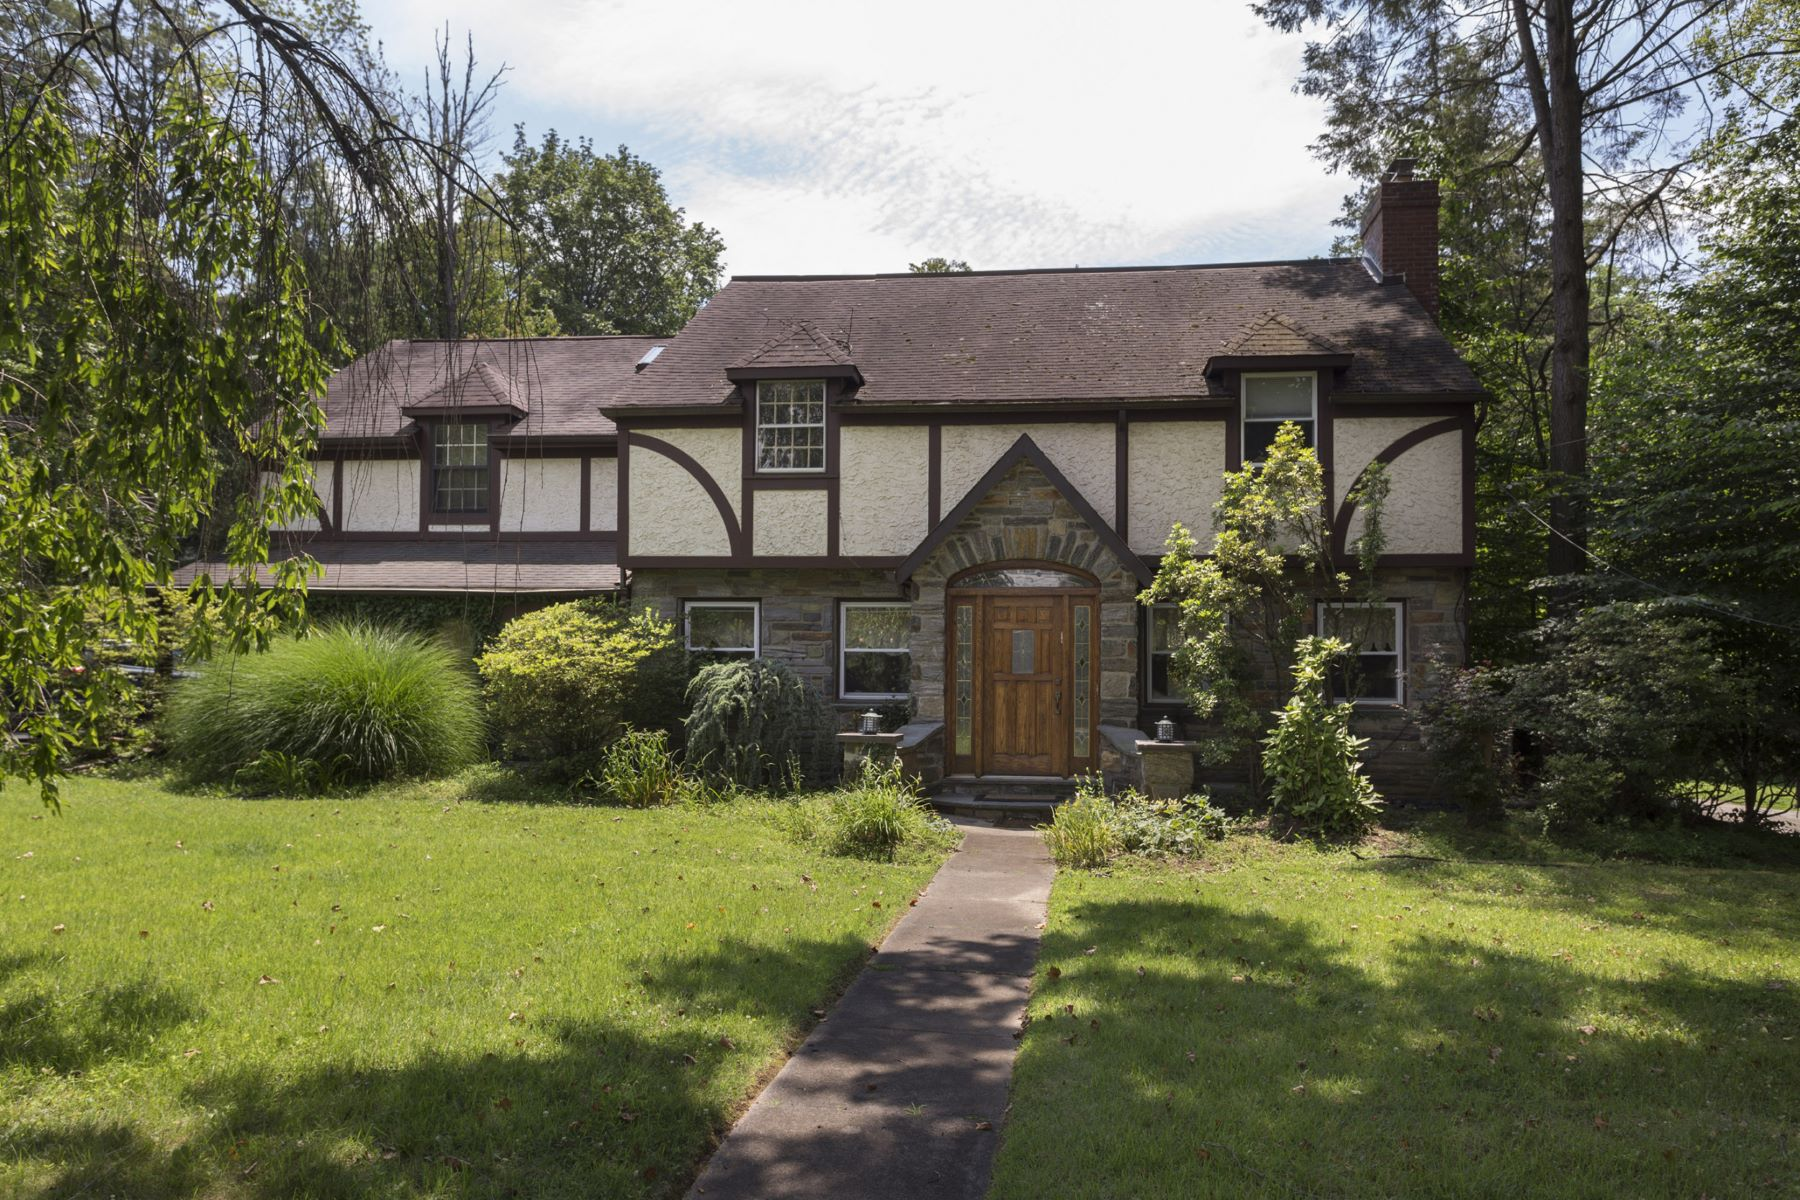 for Sale at 476 Sabine Ave Wynnewood, Pennsylvania, 19096 United States